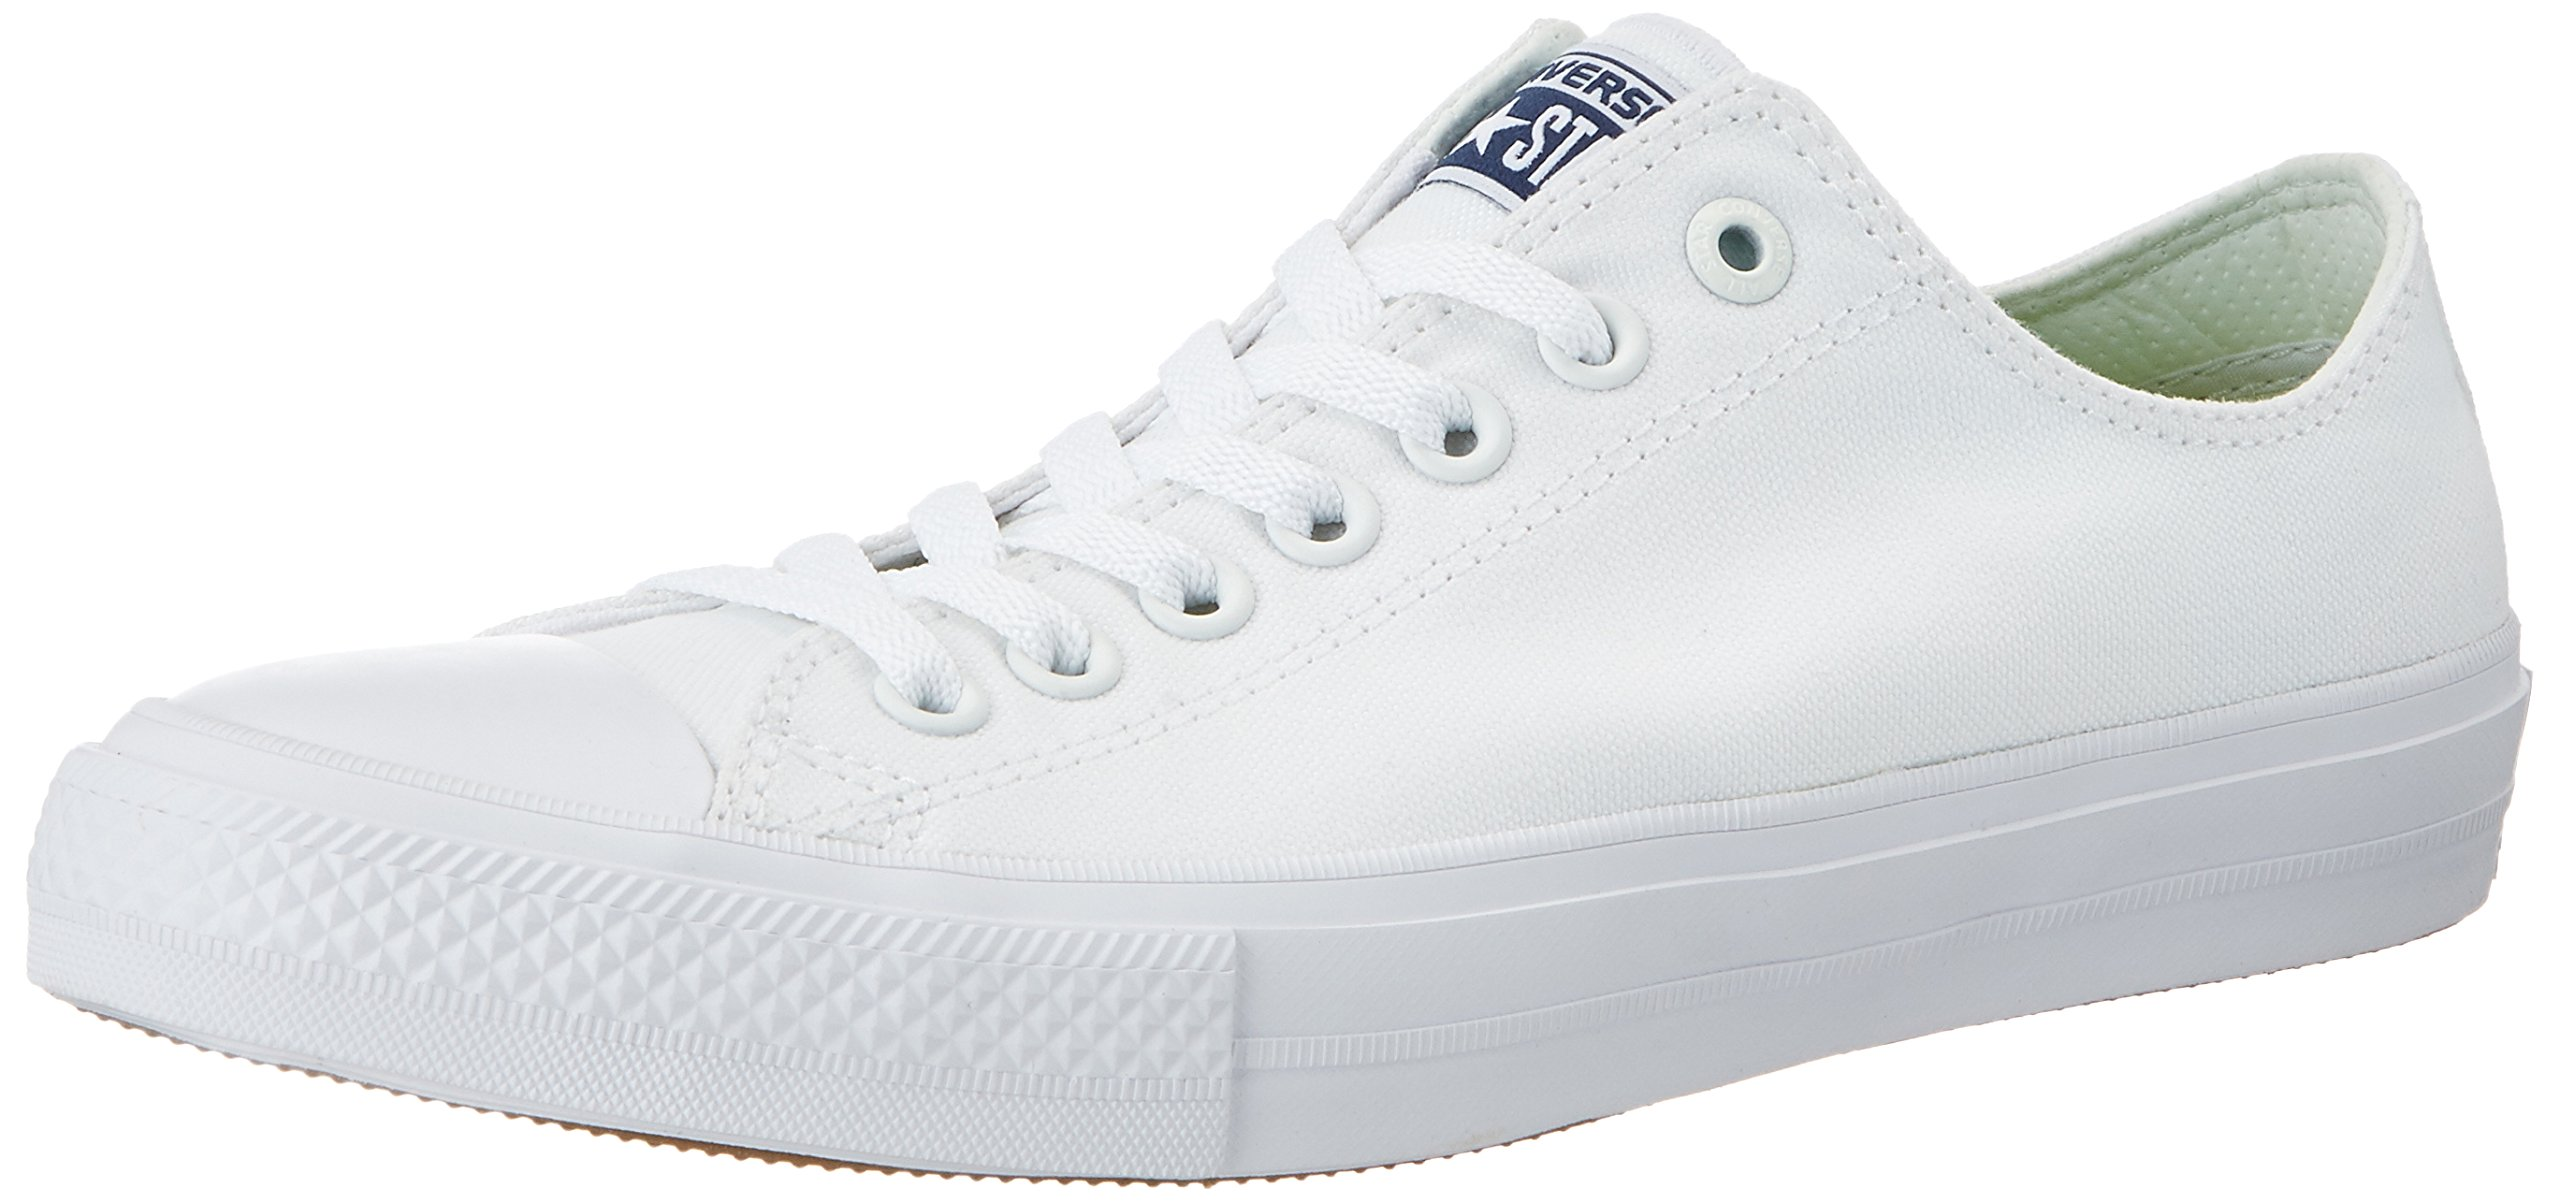 Converse Mens Chuck Taylor All Star II White 150154C-100 (SIZE: 11.5) by Converse